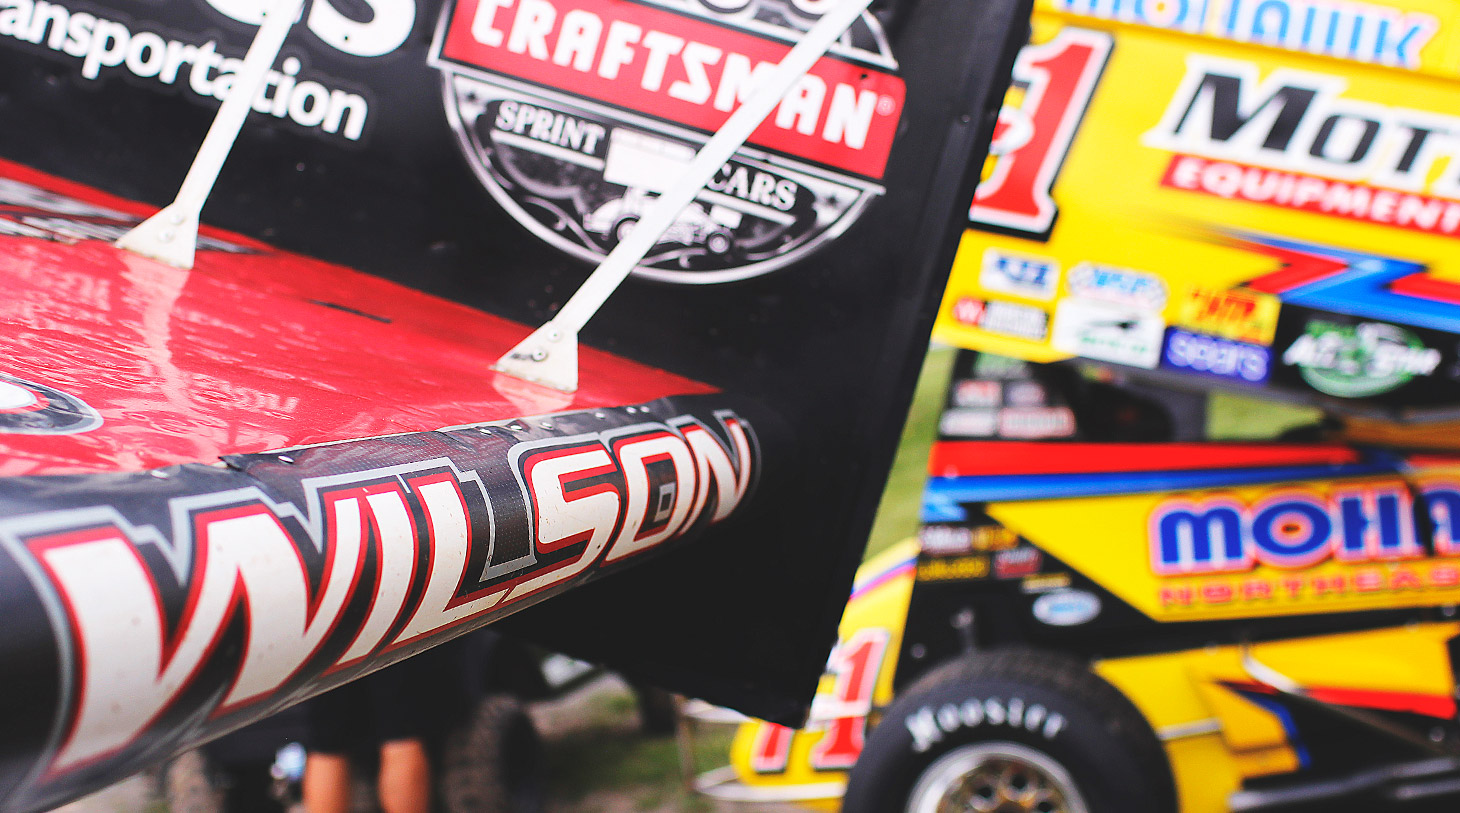 Greg Wilson currently leads the Rookie of the Year standing with The World of Outlaws. (Jeffrey Turford / TDP)